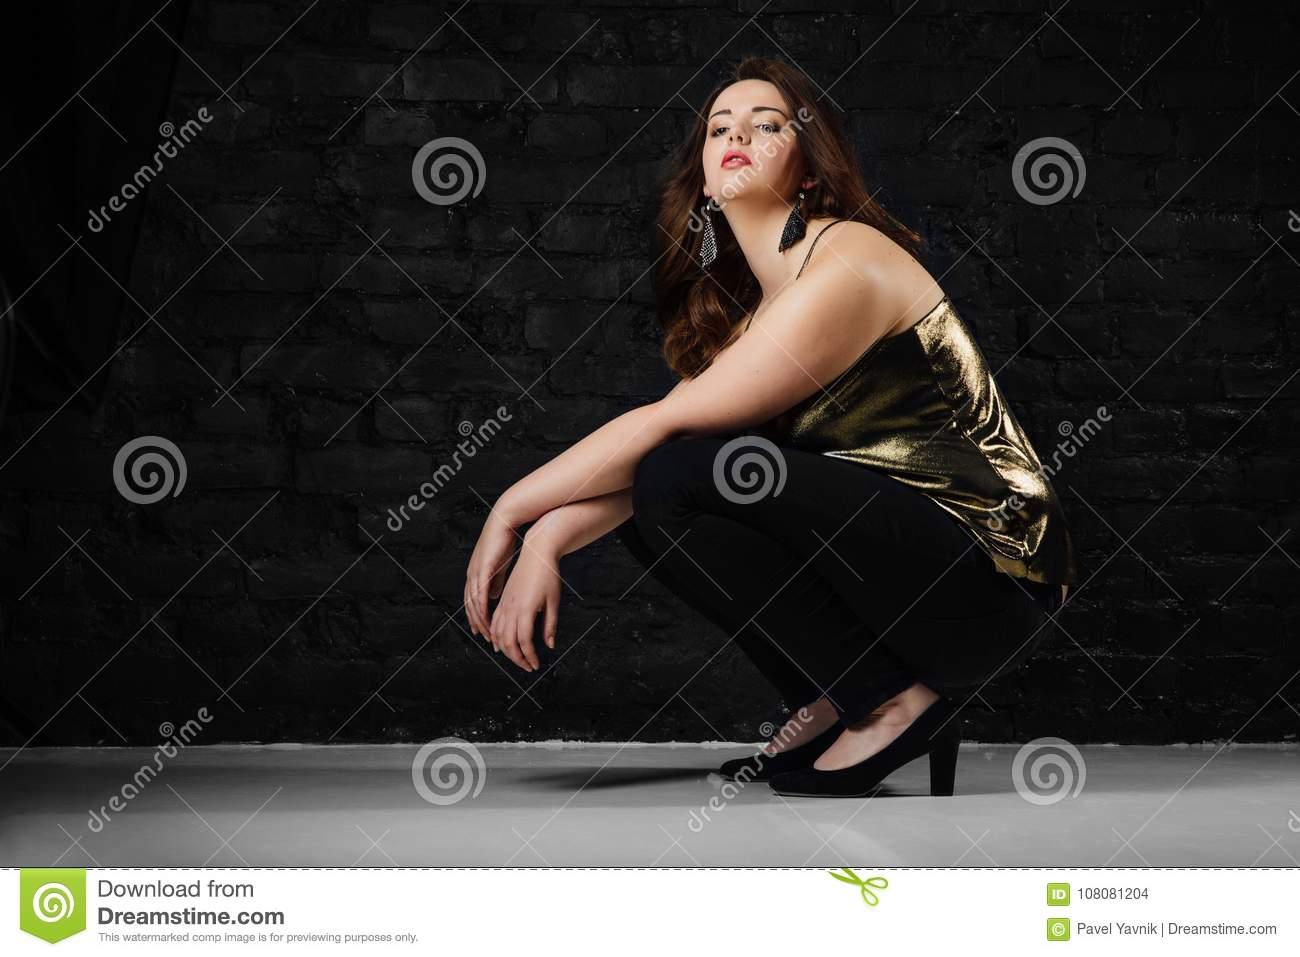 c0272b023d855 Royalty-Free Stock Photo. Plus size model in a gold blouse and black jeans  on a brick loft background.